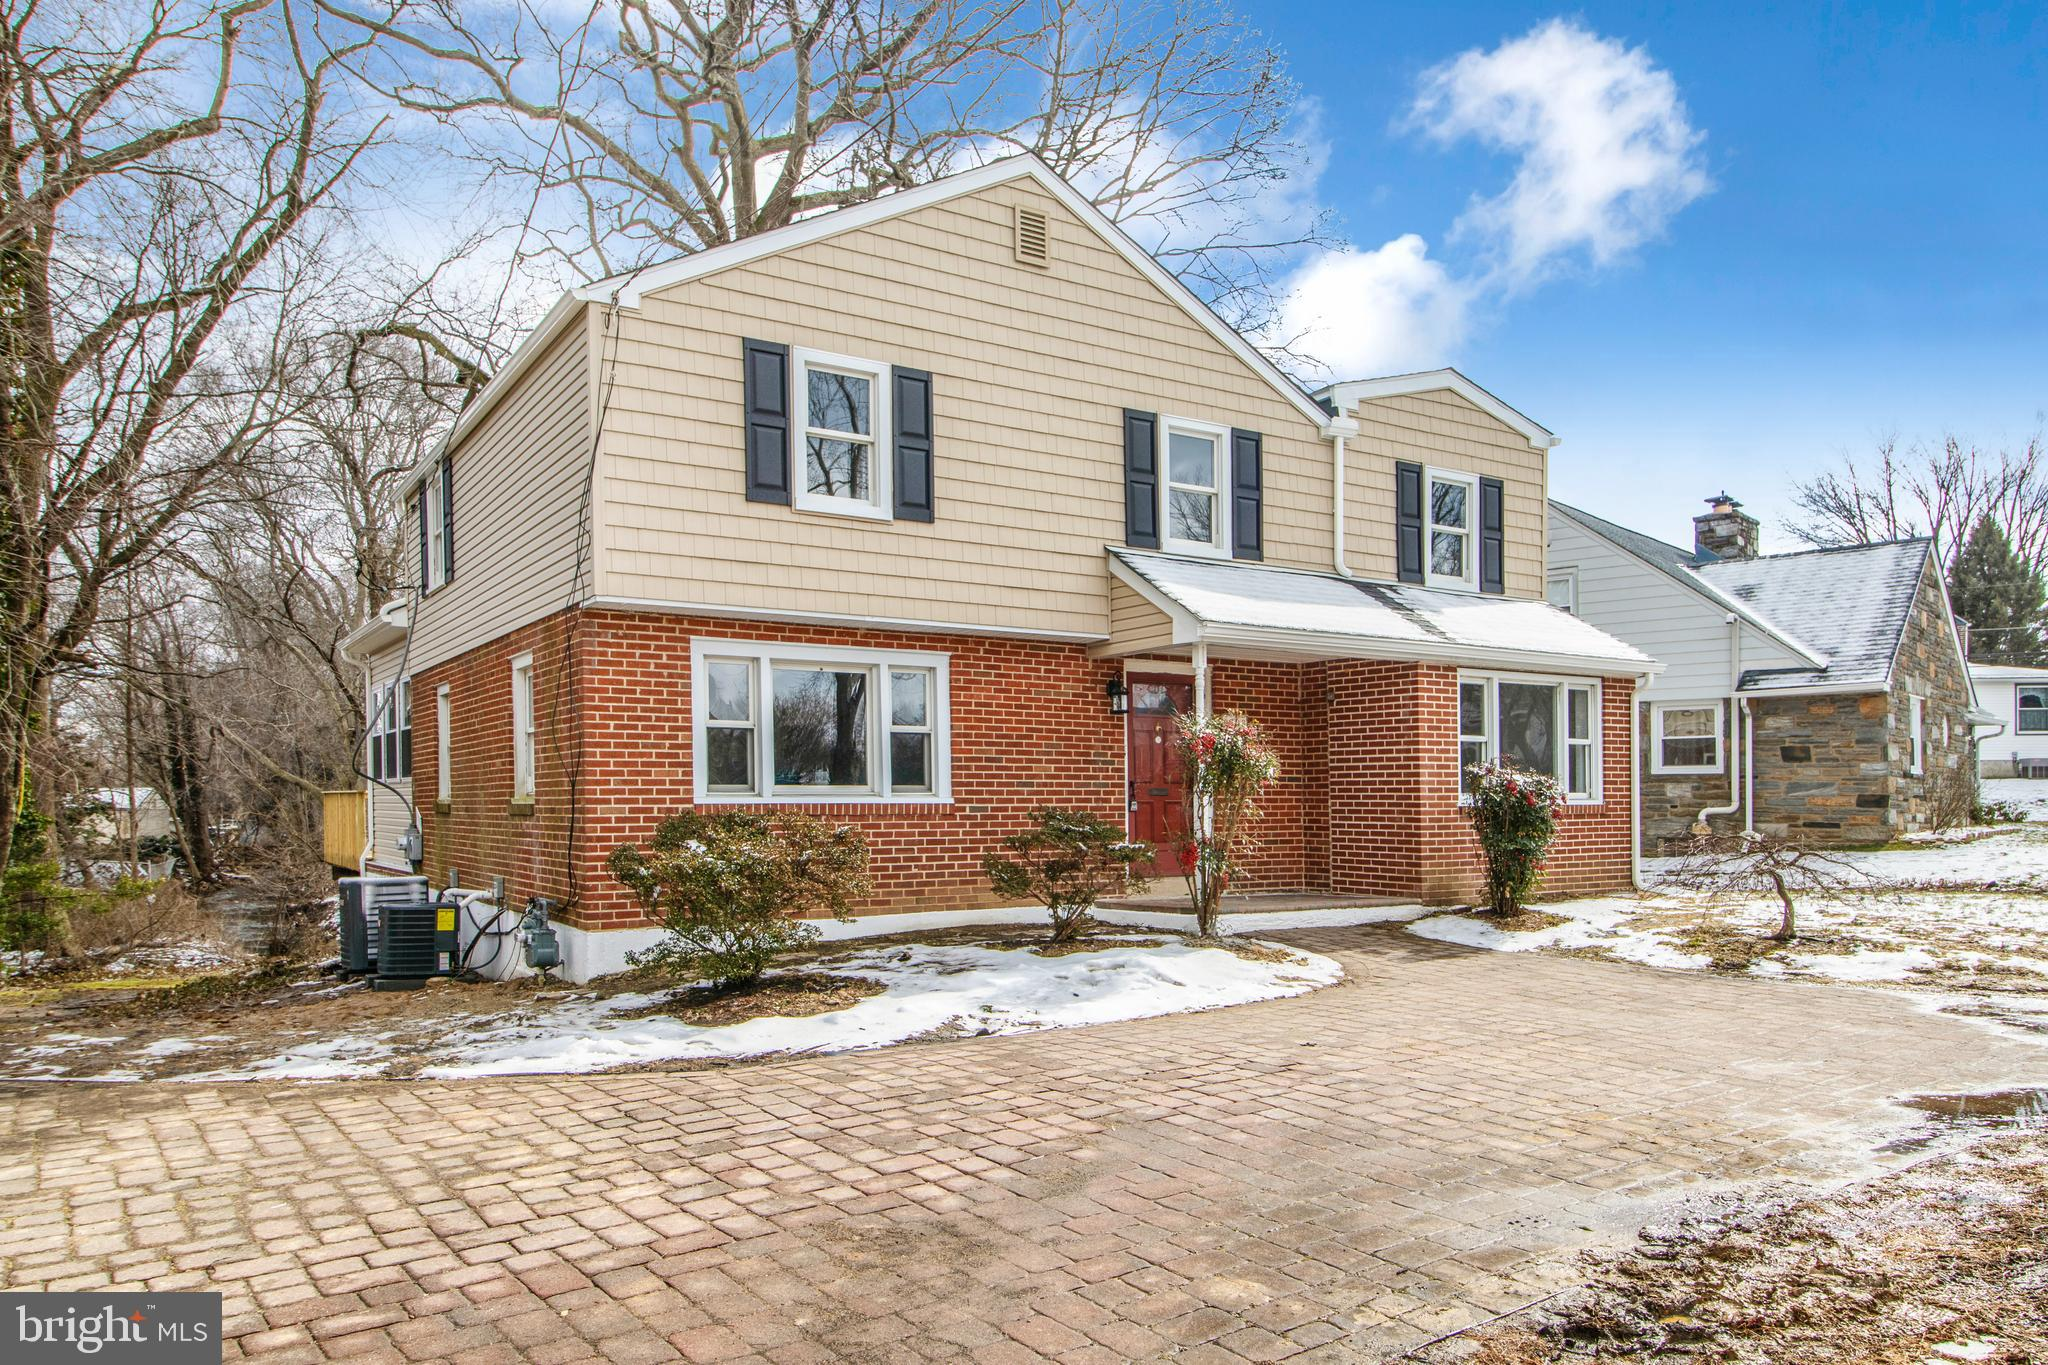 2308 GRAND AVENUE, MORTON, PA 19070